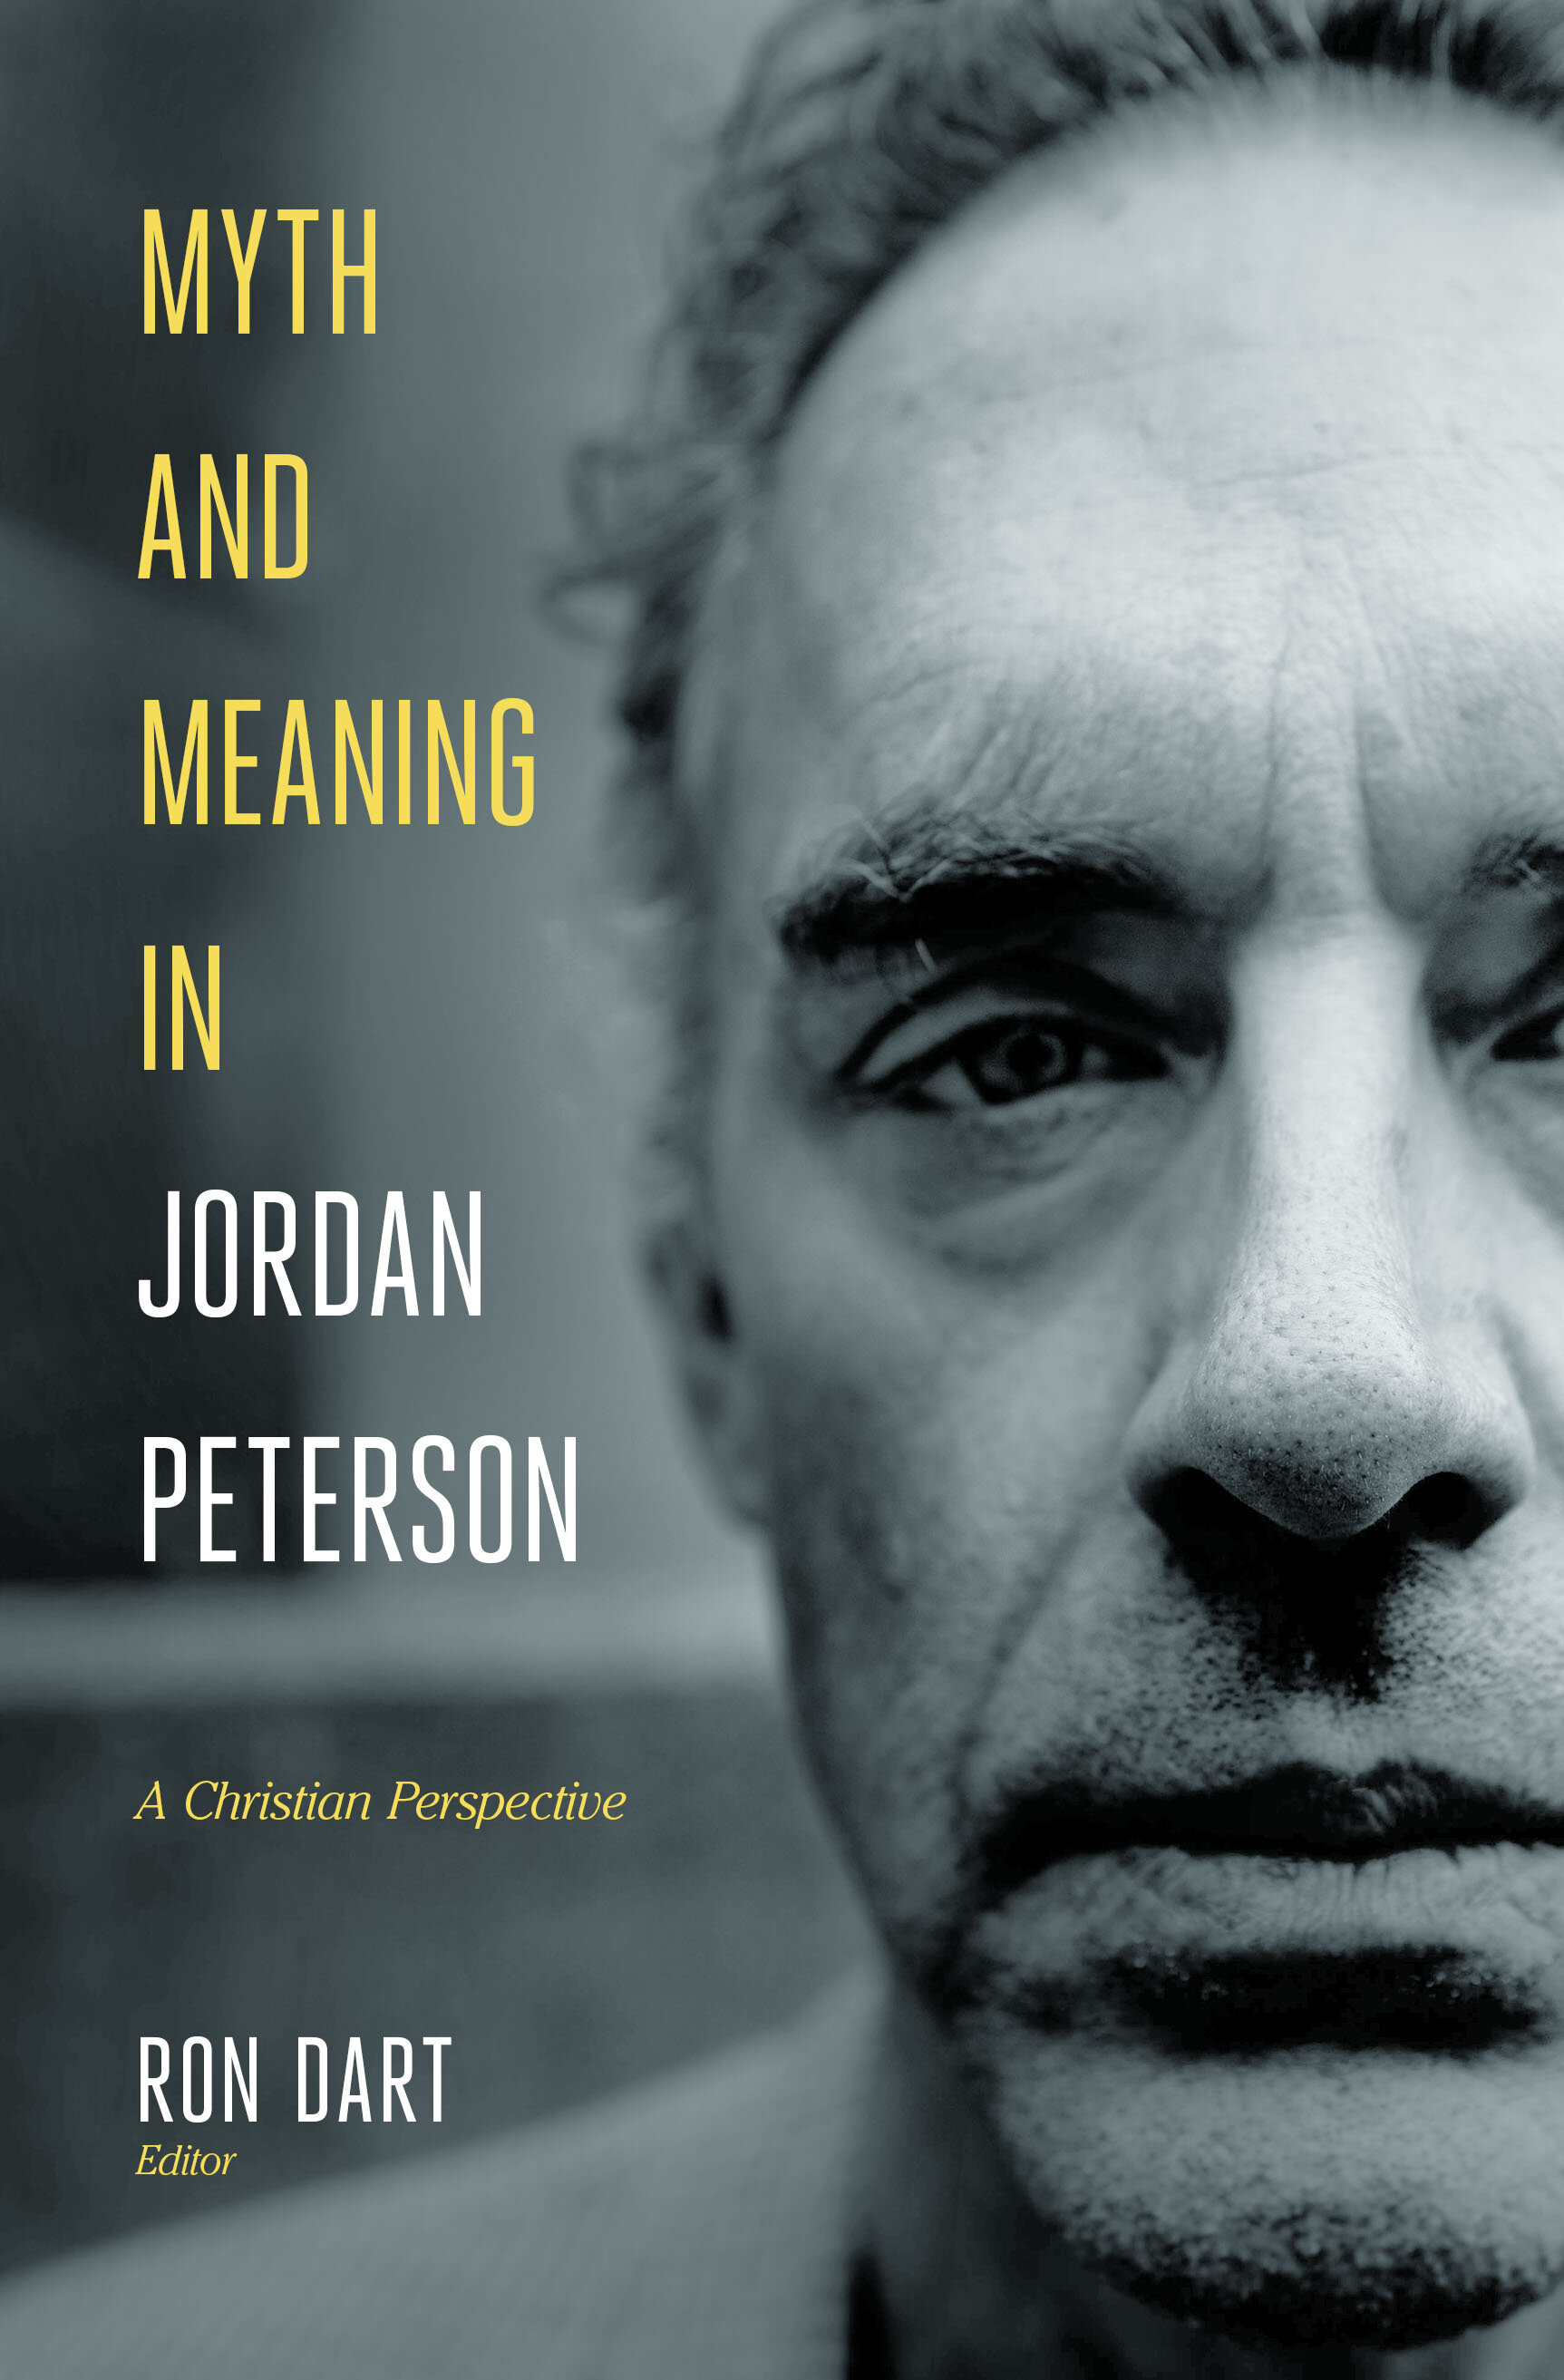 Myth and Meaning in Jordan Peterson: A Christian Perspective